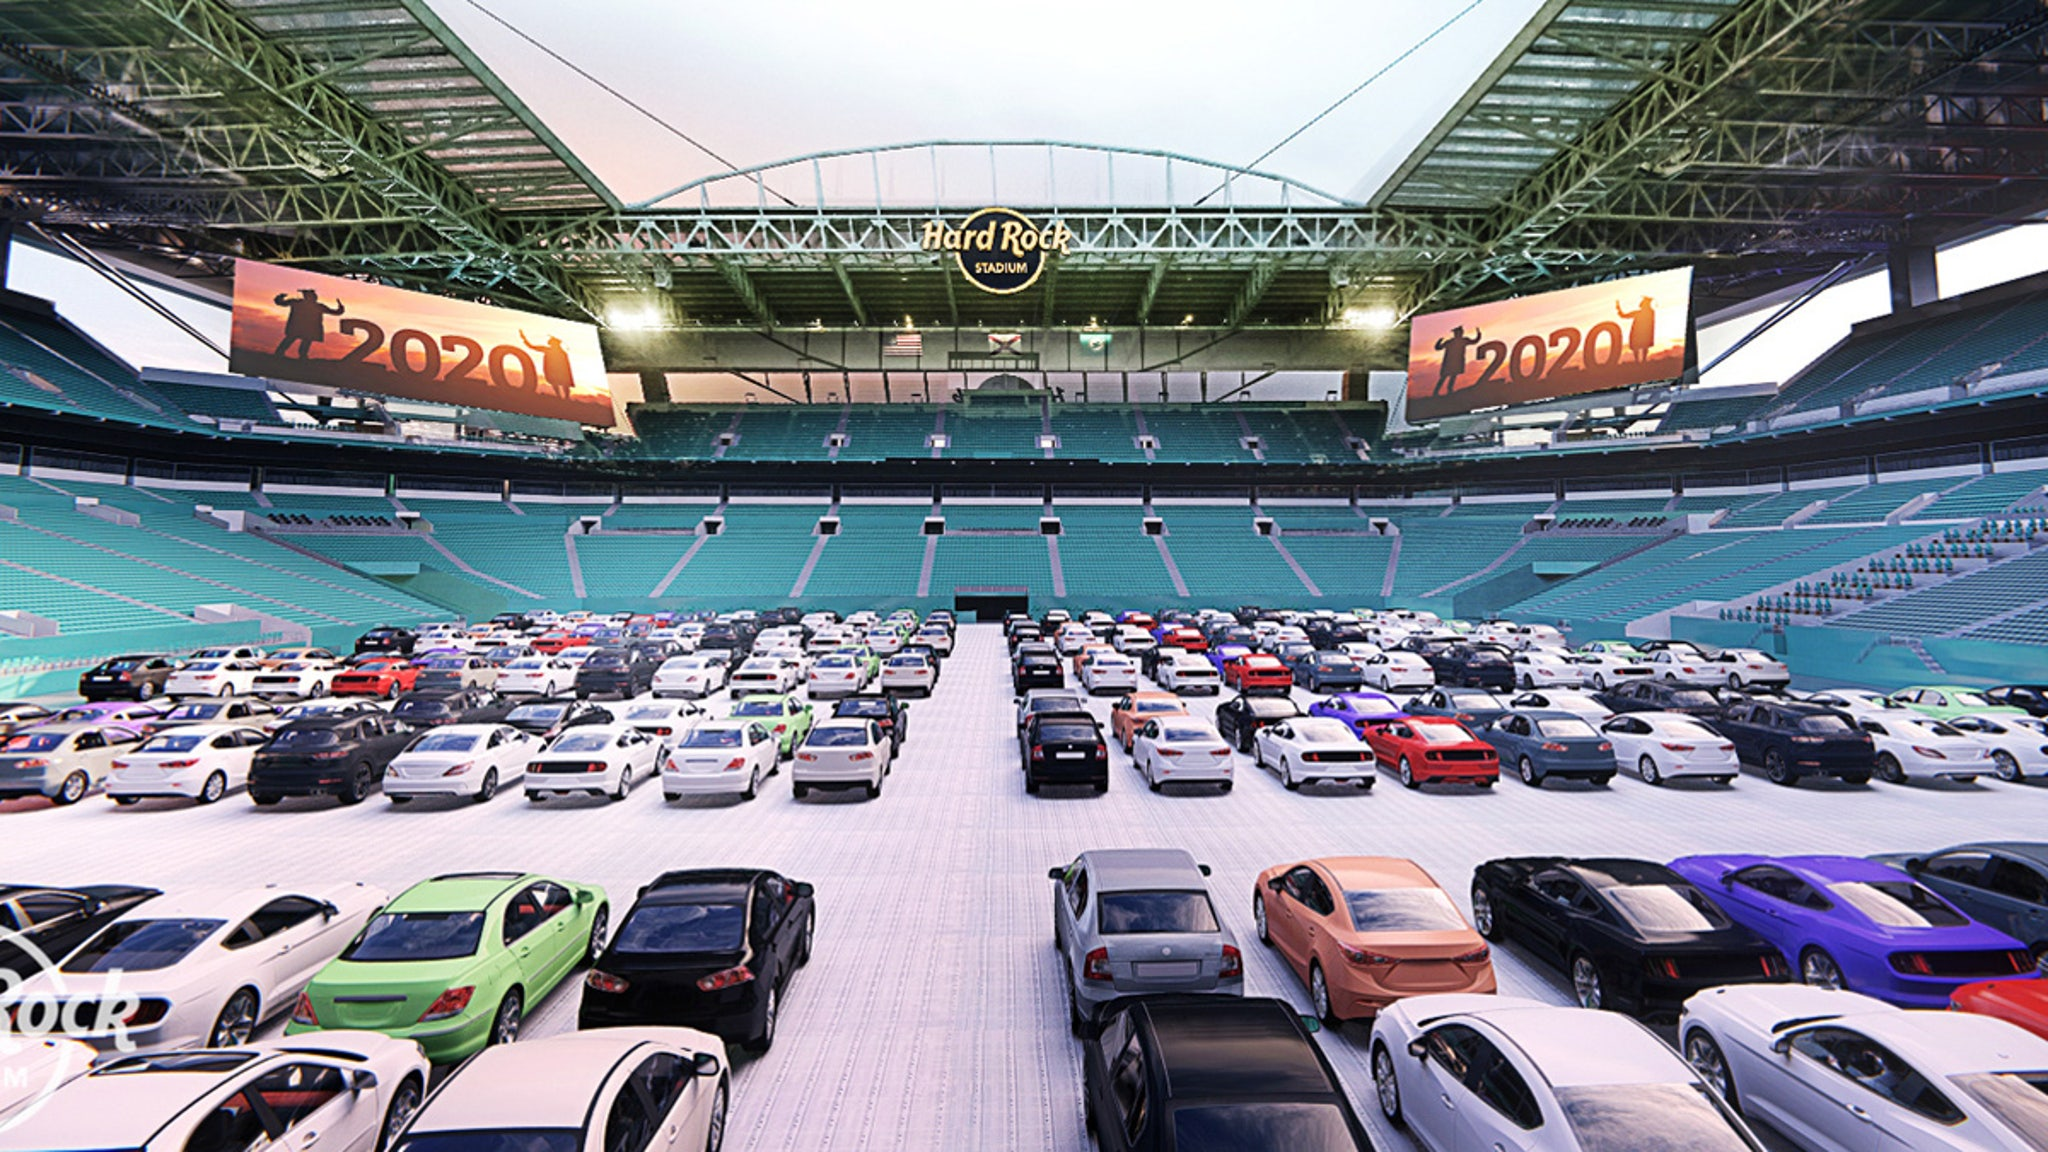 Miami Dolphins Converting Stadium Into Drive-In Theater, Social Distancing!